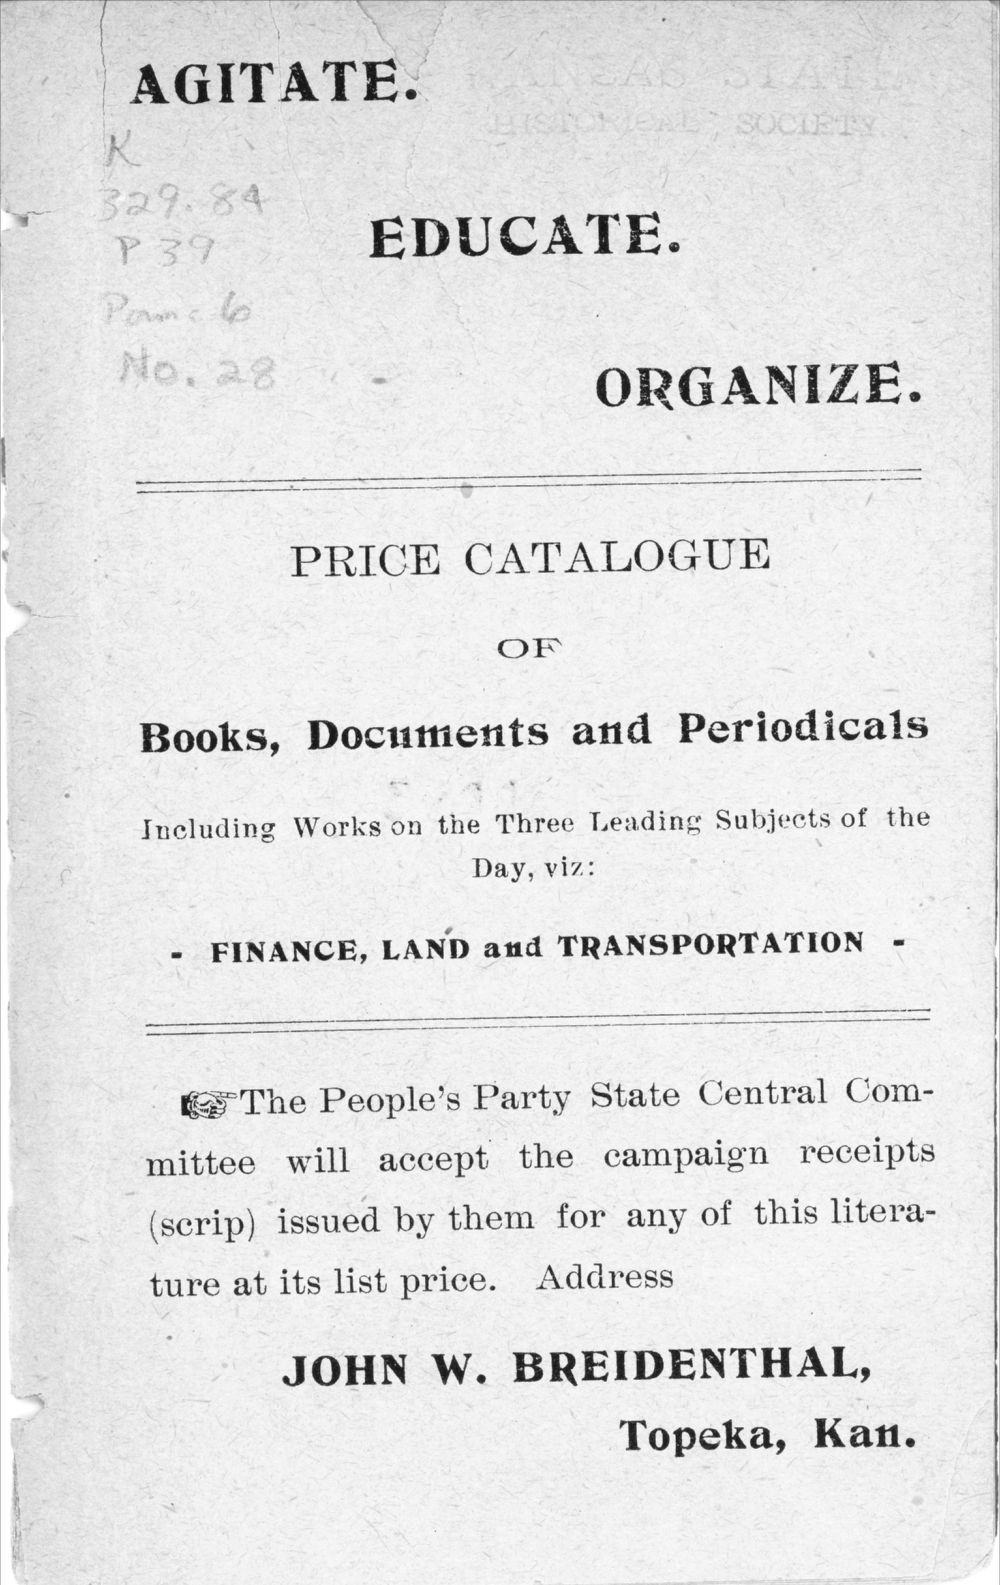 Agitate, educate, organize:  price catalogue of books, documents and periodicals - 2